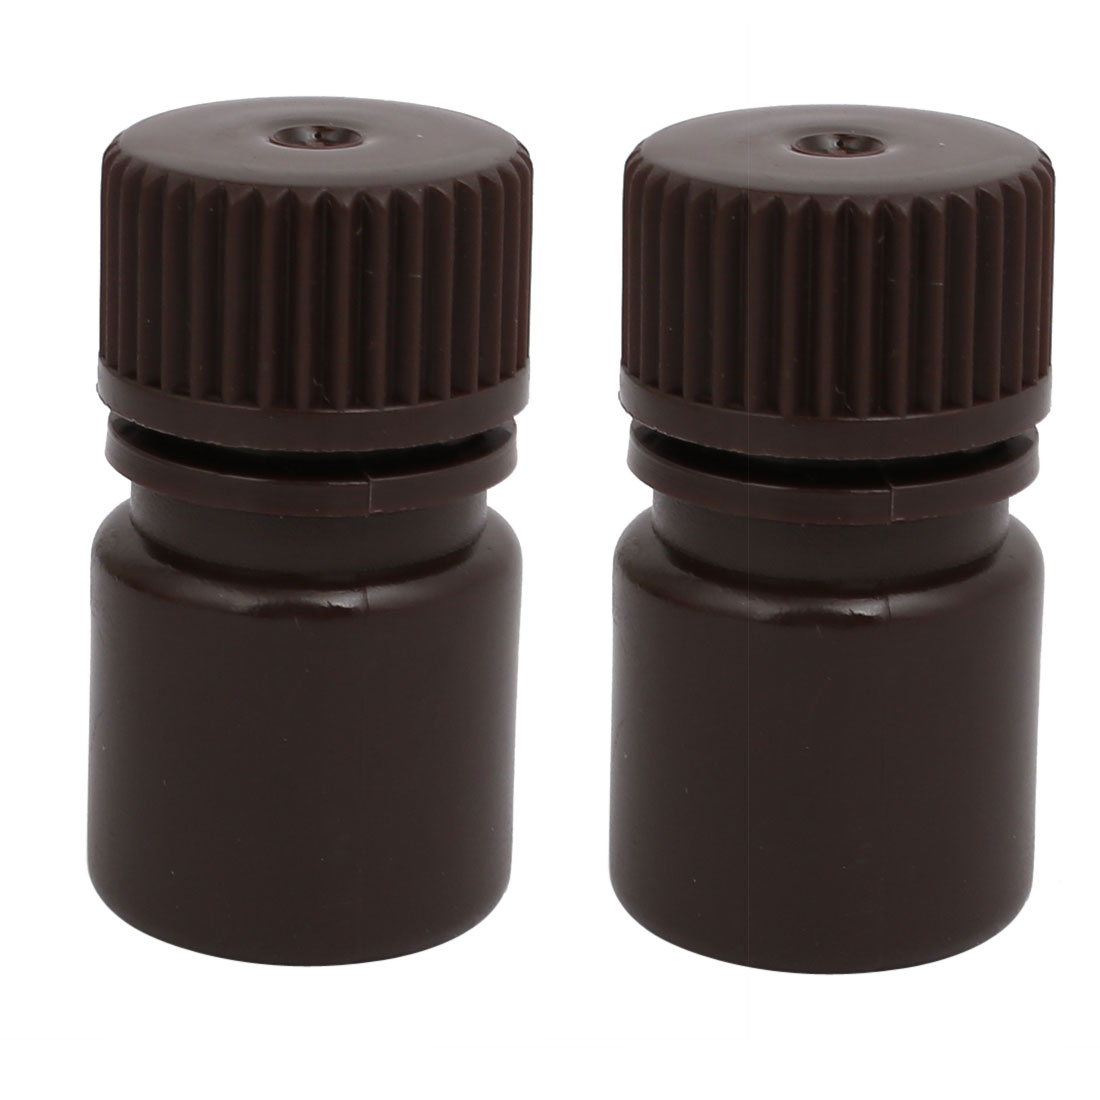 5ml 13mm Diameter HDPE Plastic Round Wide Mouth Laboratory Bottle Brown 2pcs